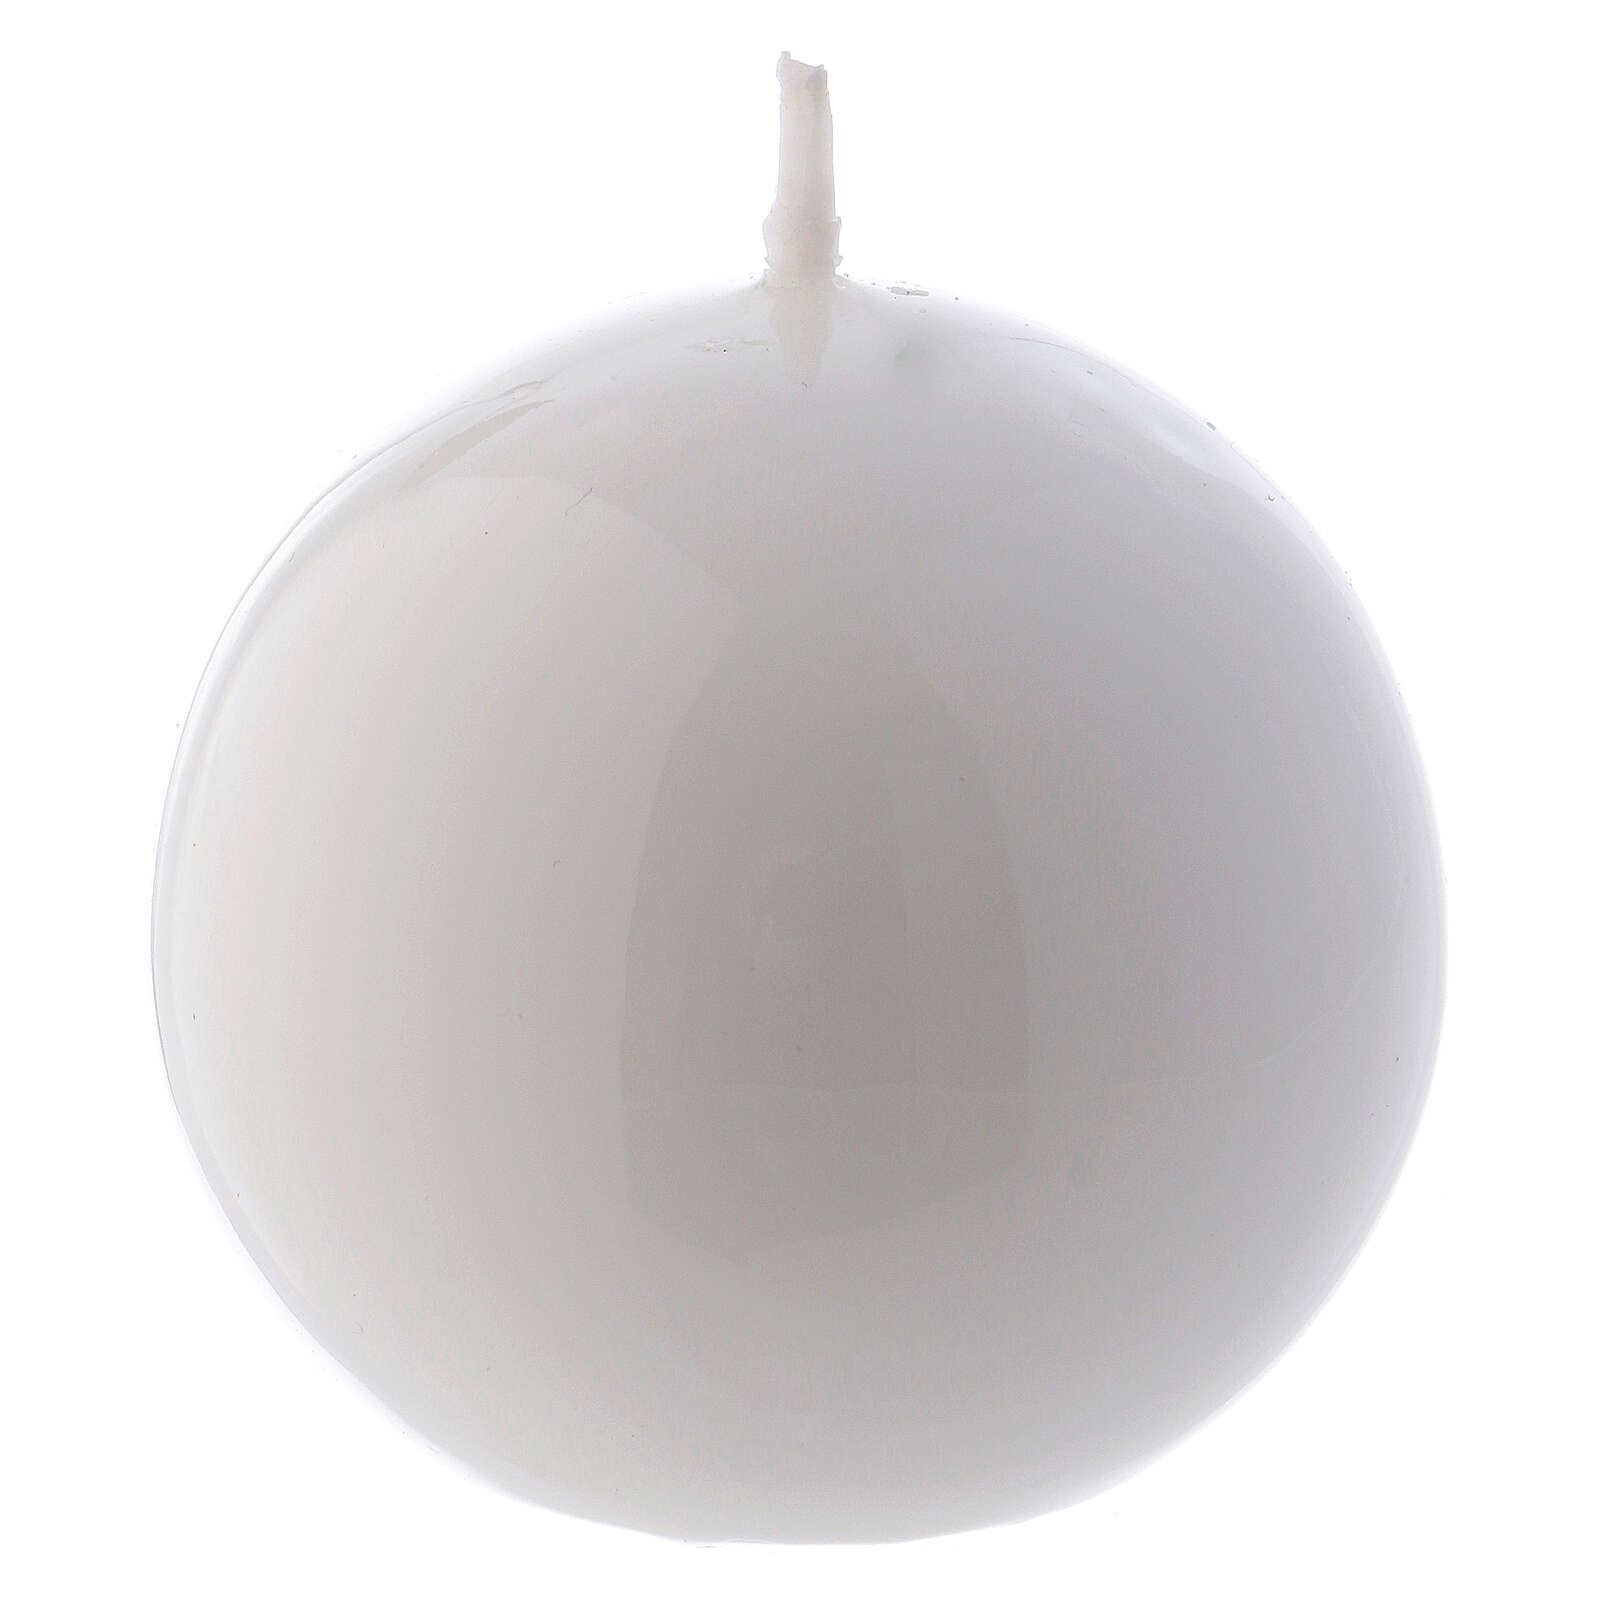 Shiny Sphere Candle Ceralacca, d. 6 cm white 3